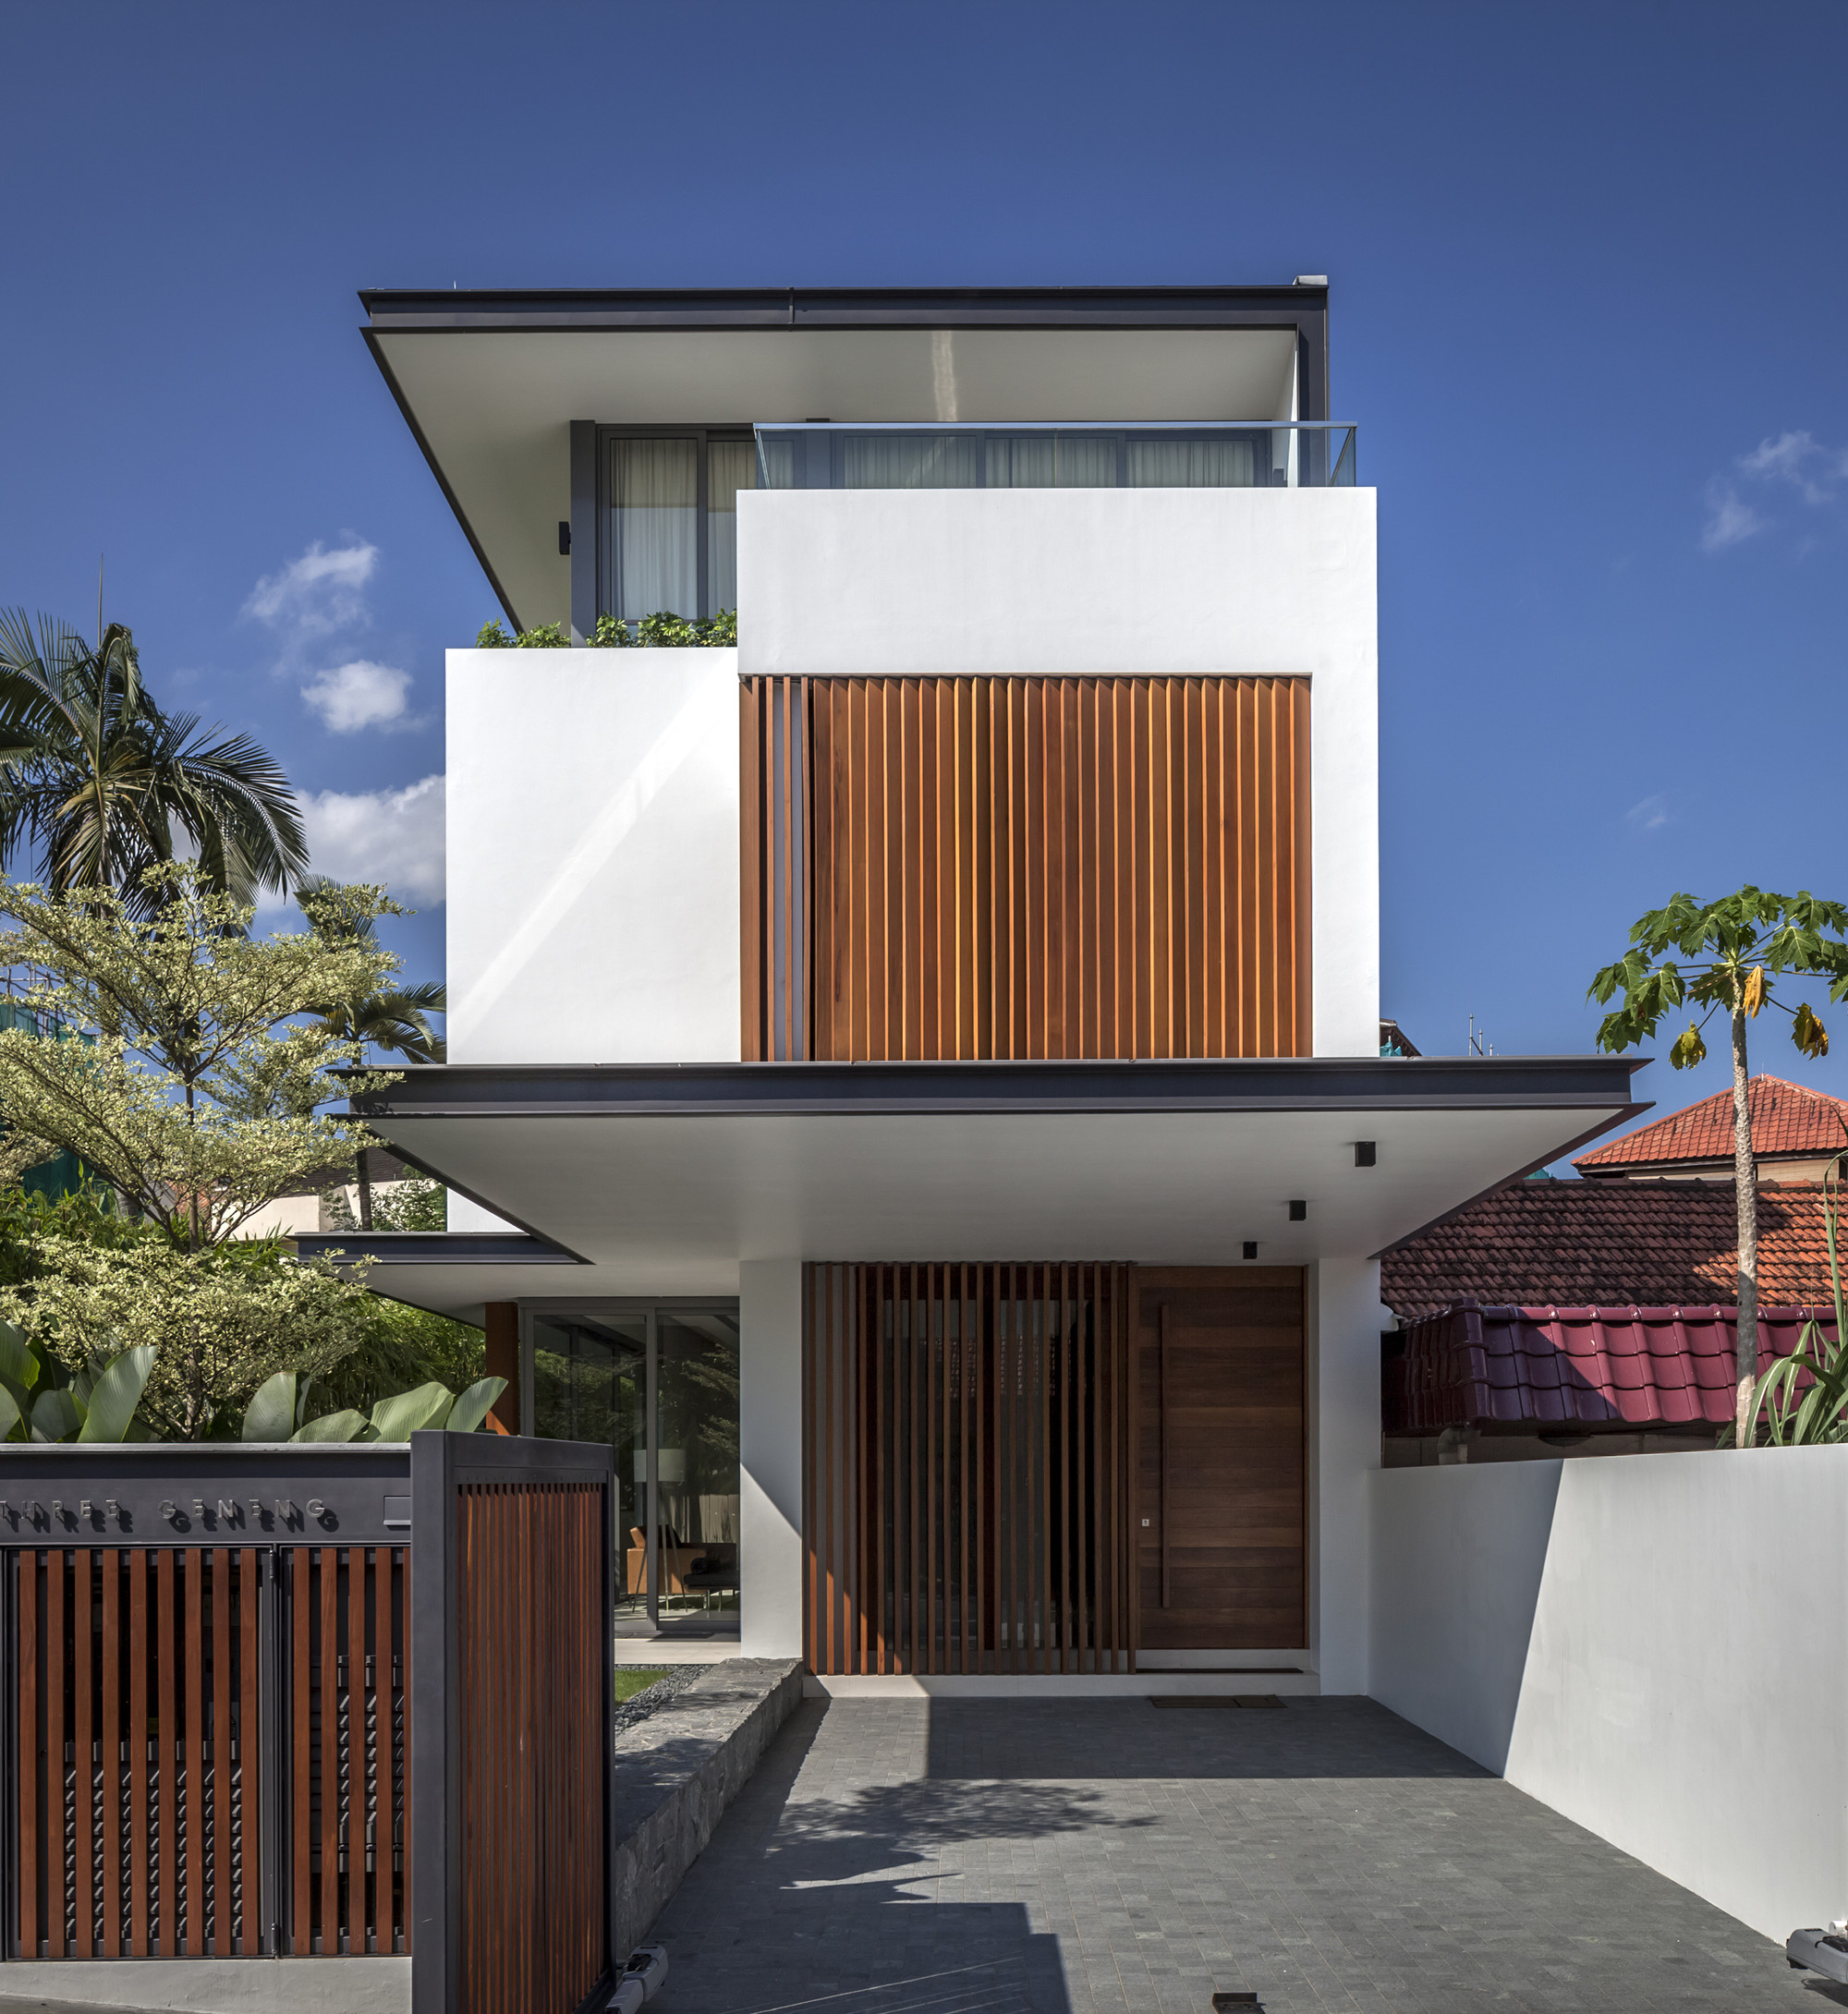 Architecture Design: Sunny Side House / Wallflower Architecture + Design